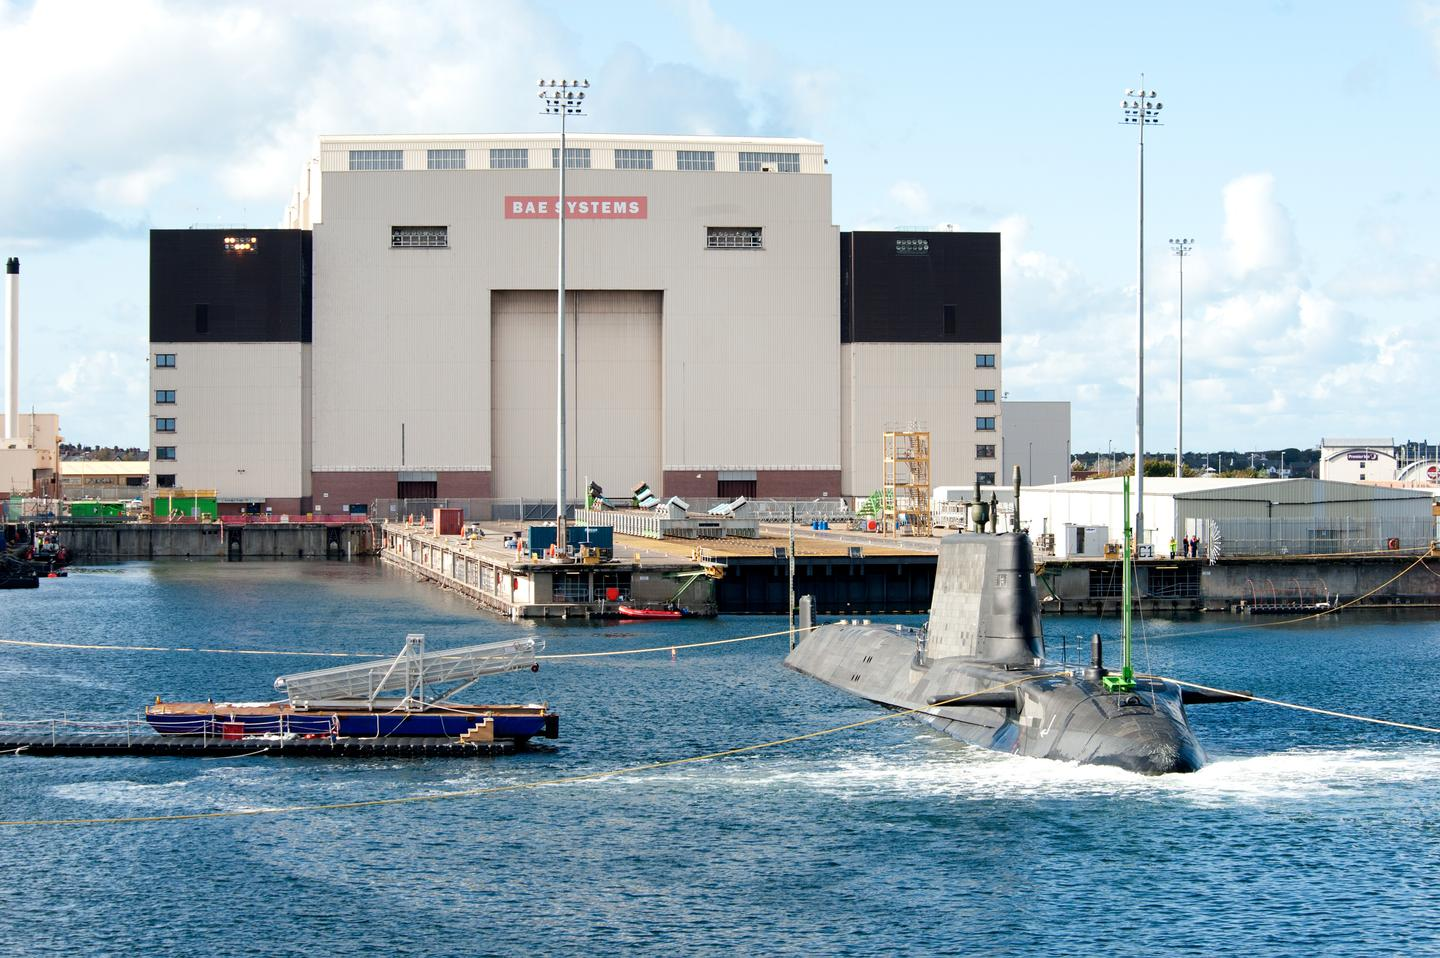 Artful completed her maiden dive at Barrow in Furness (Image: BAe Systems)